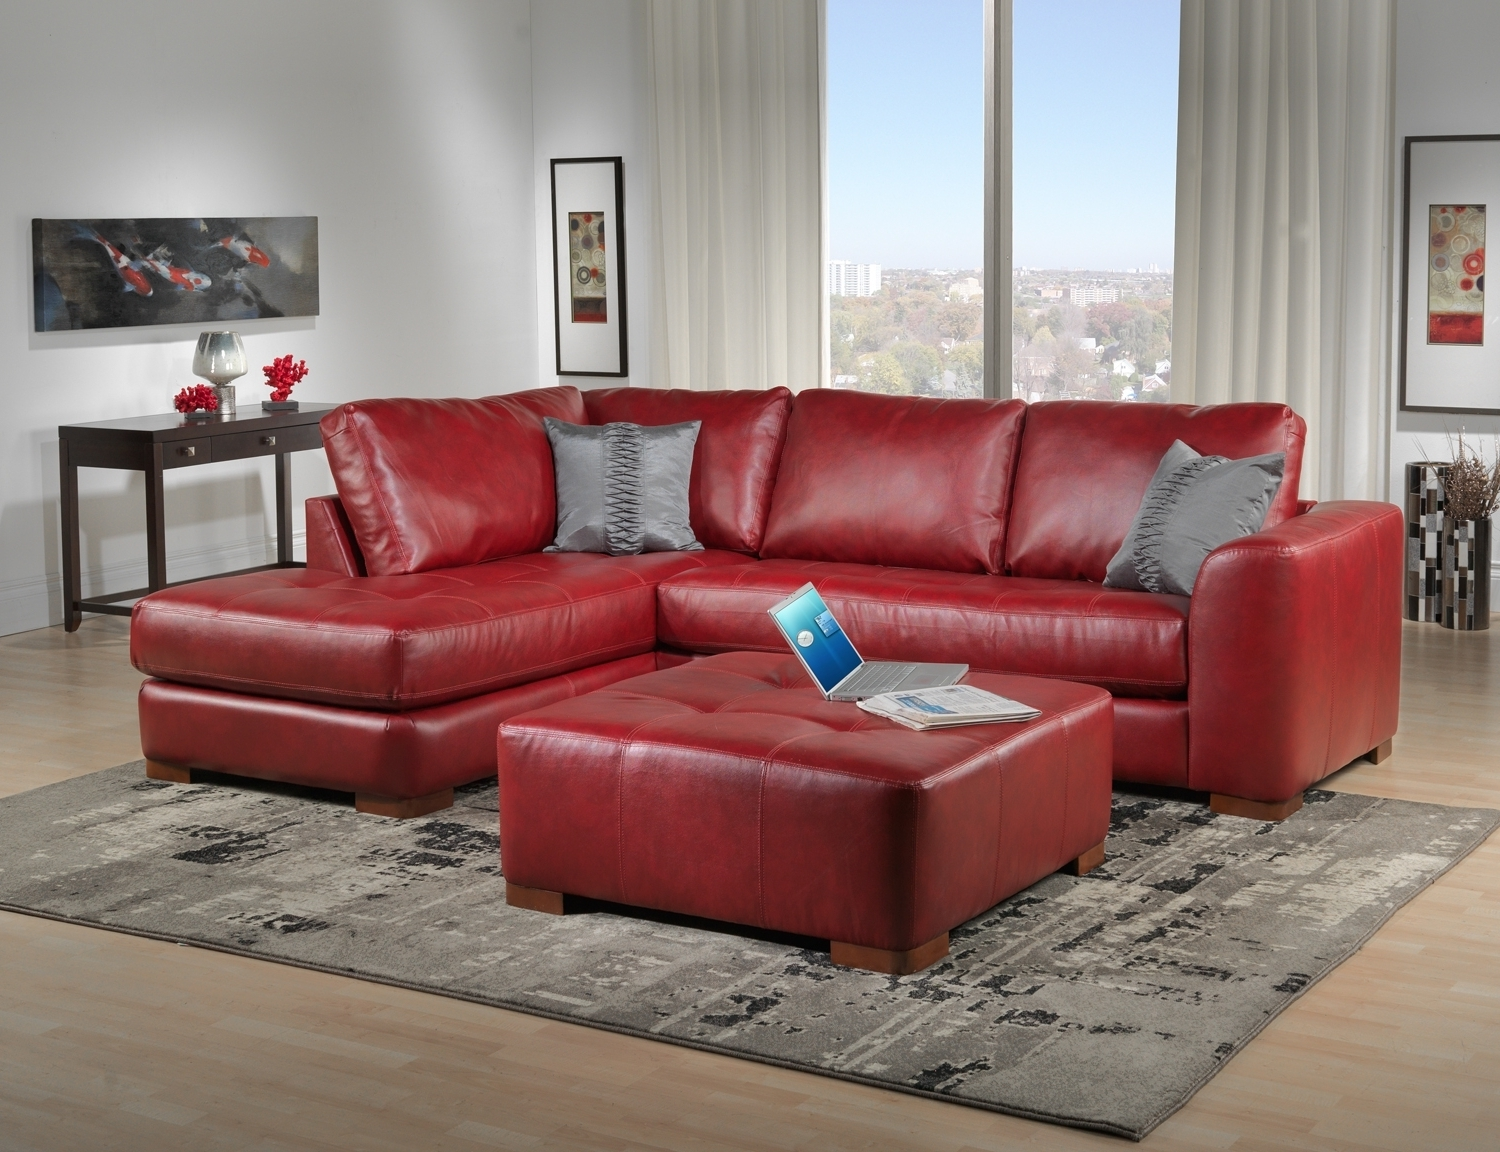 Red Inside Red Leather Sectional Couches (View 17 of 20)